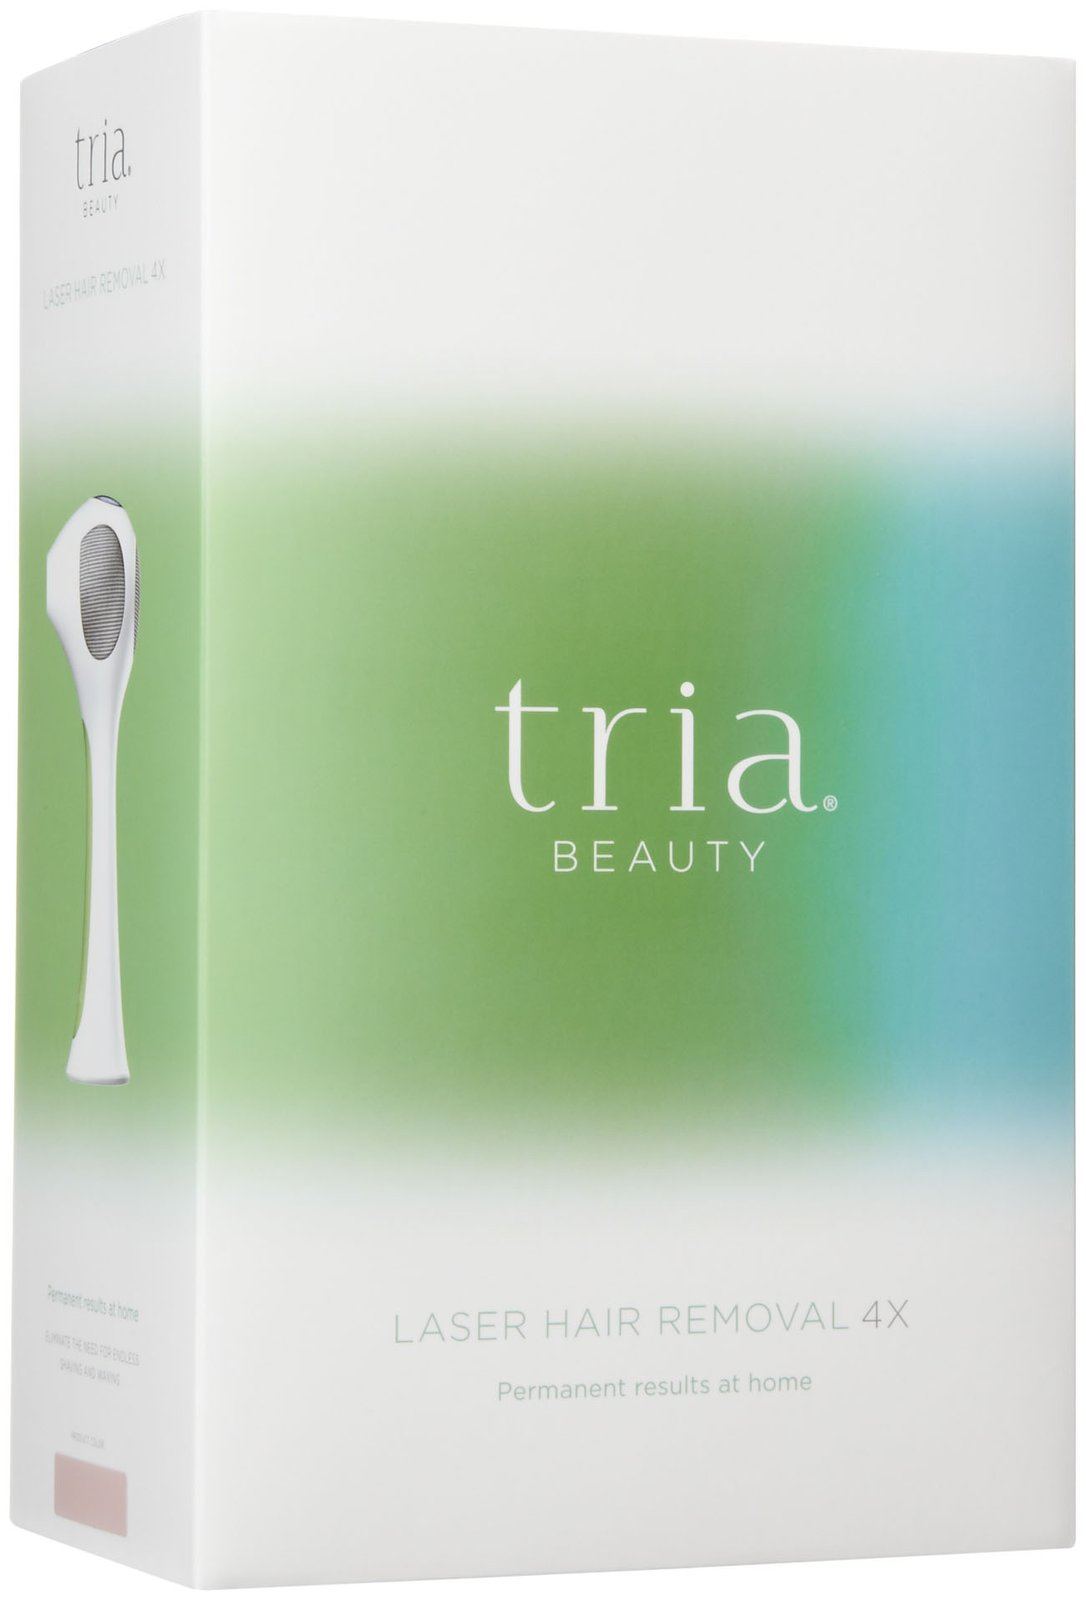 Tria Beauty At Home Laser Hair Removal PCOS Diva